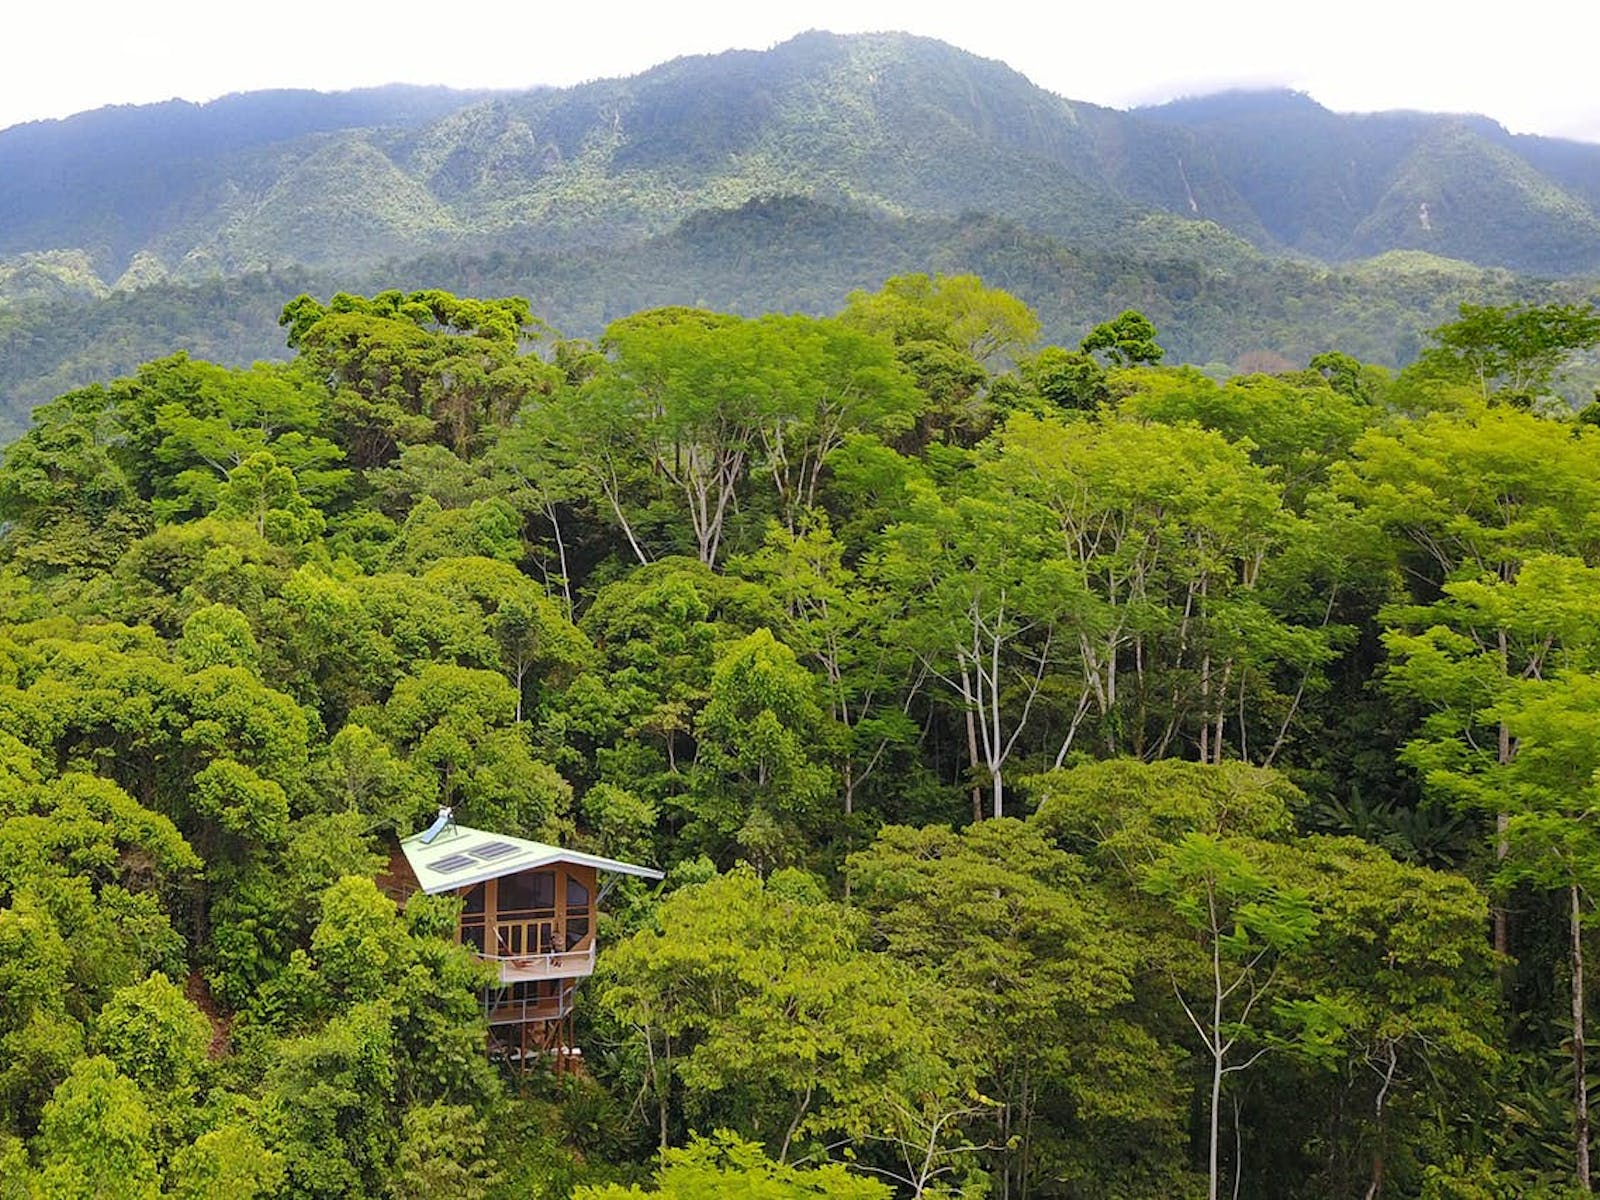 Treehouse nestled within the Costa Rican rainforest